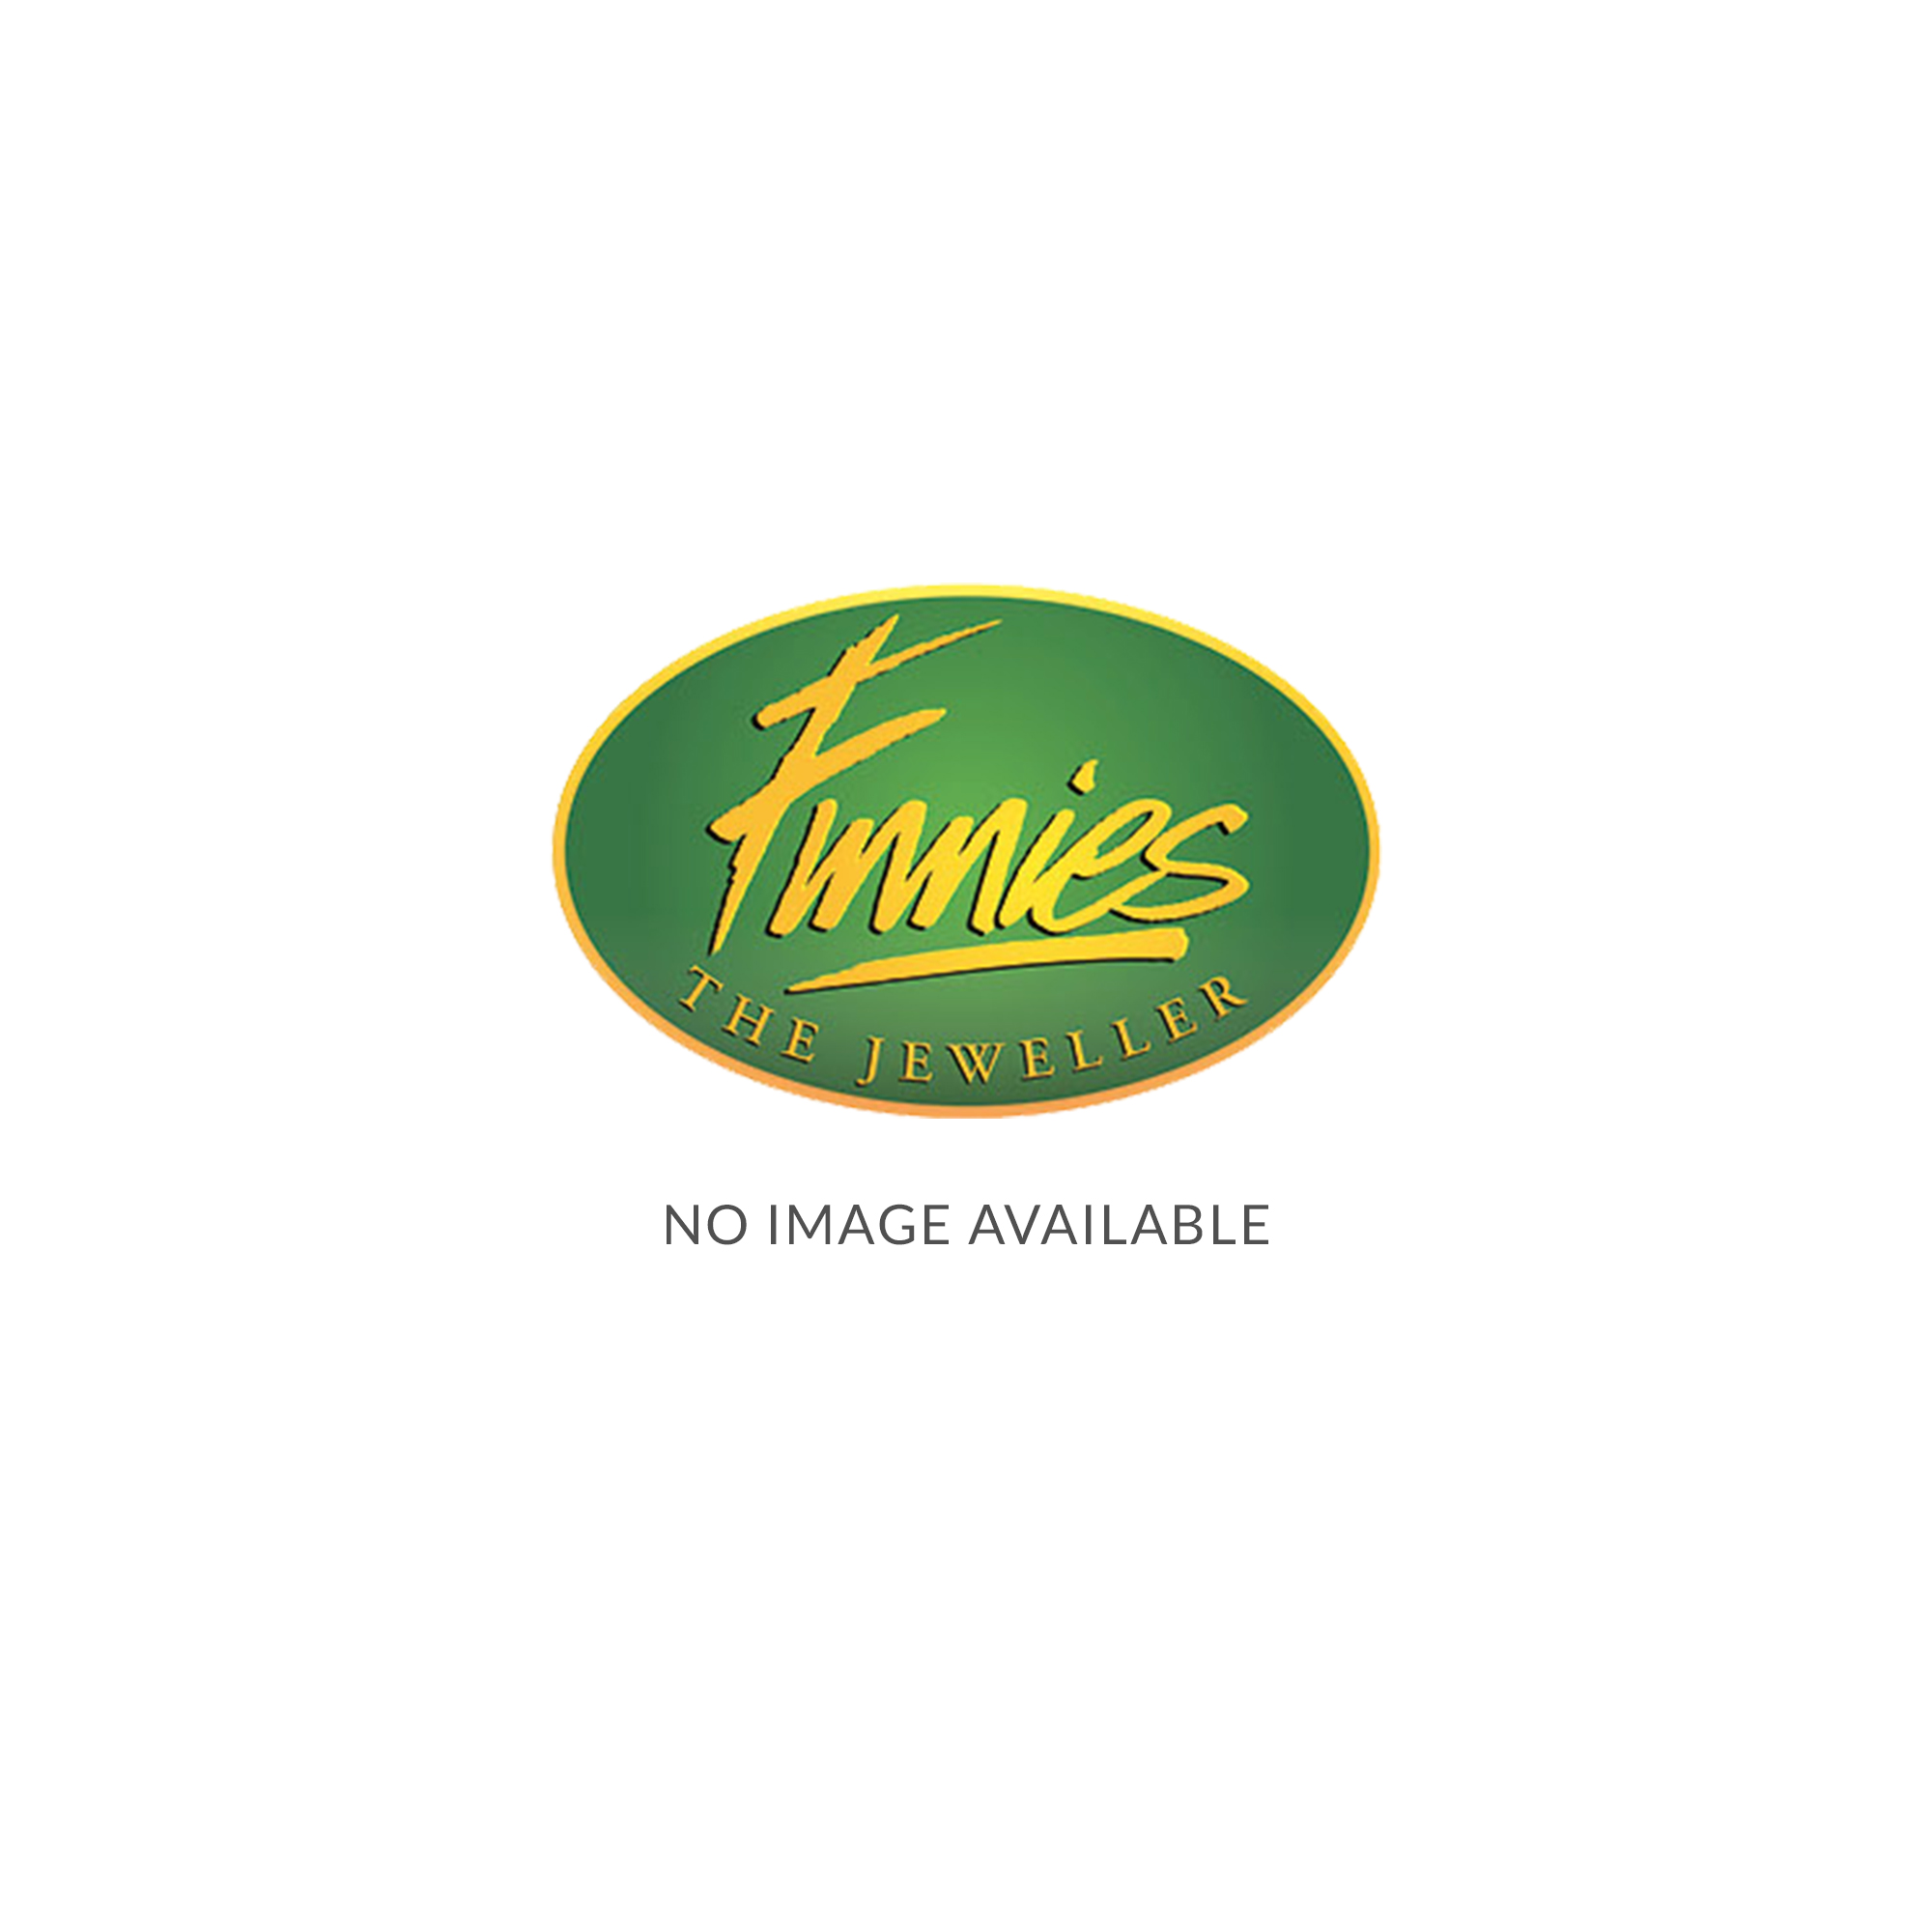 buylondon white main johnlewis gold earrings road lewis rsp pdp at john london meridian online circle stud diamond